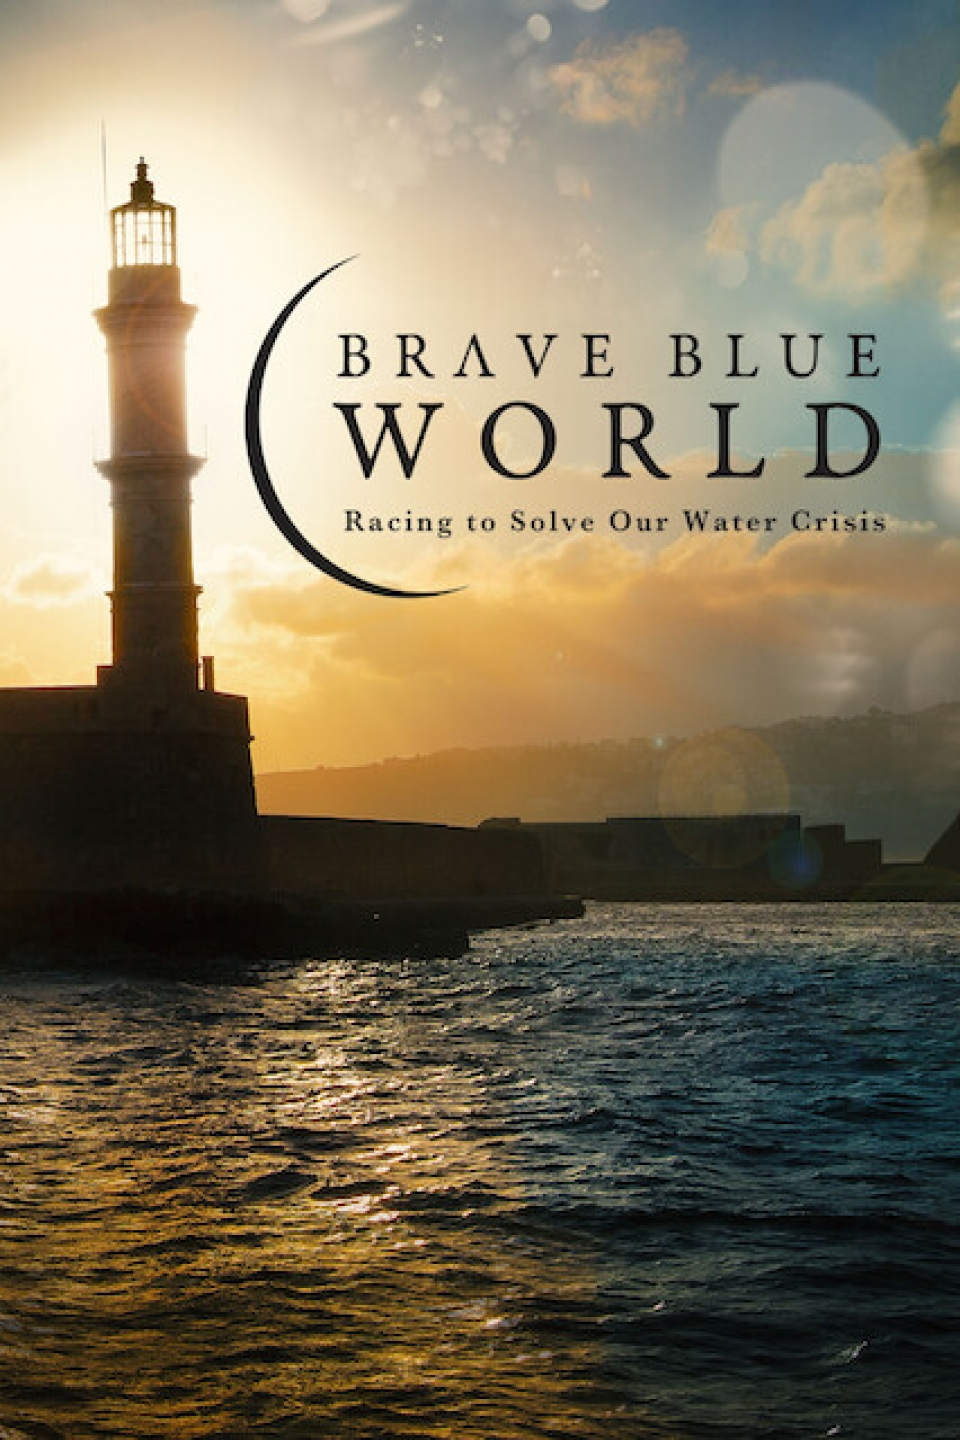 BRAVE BLUE WORLD: RACING TO SOLVE OUR WATER CRISIS | NETFLIX (2019)